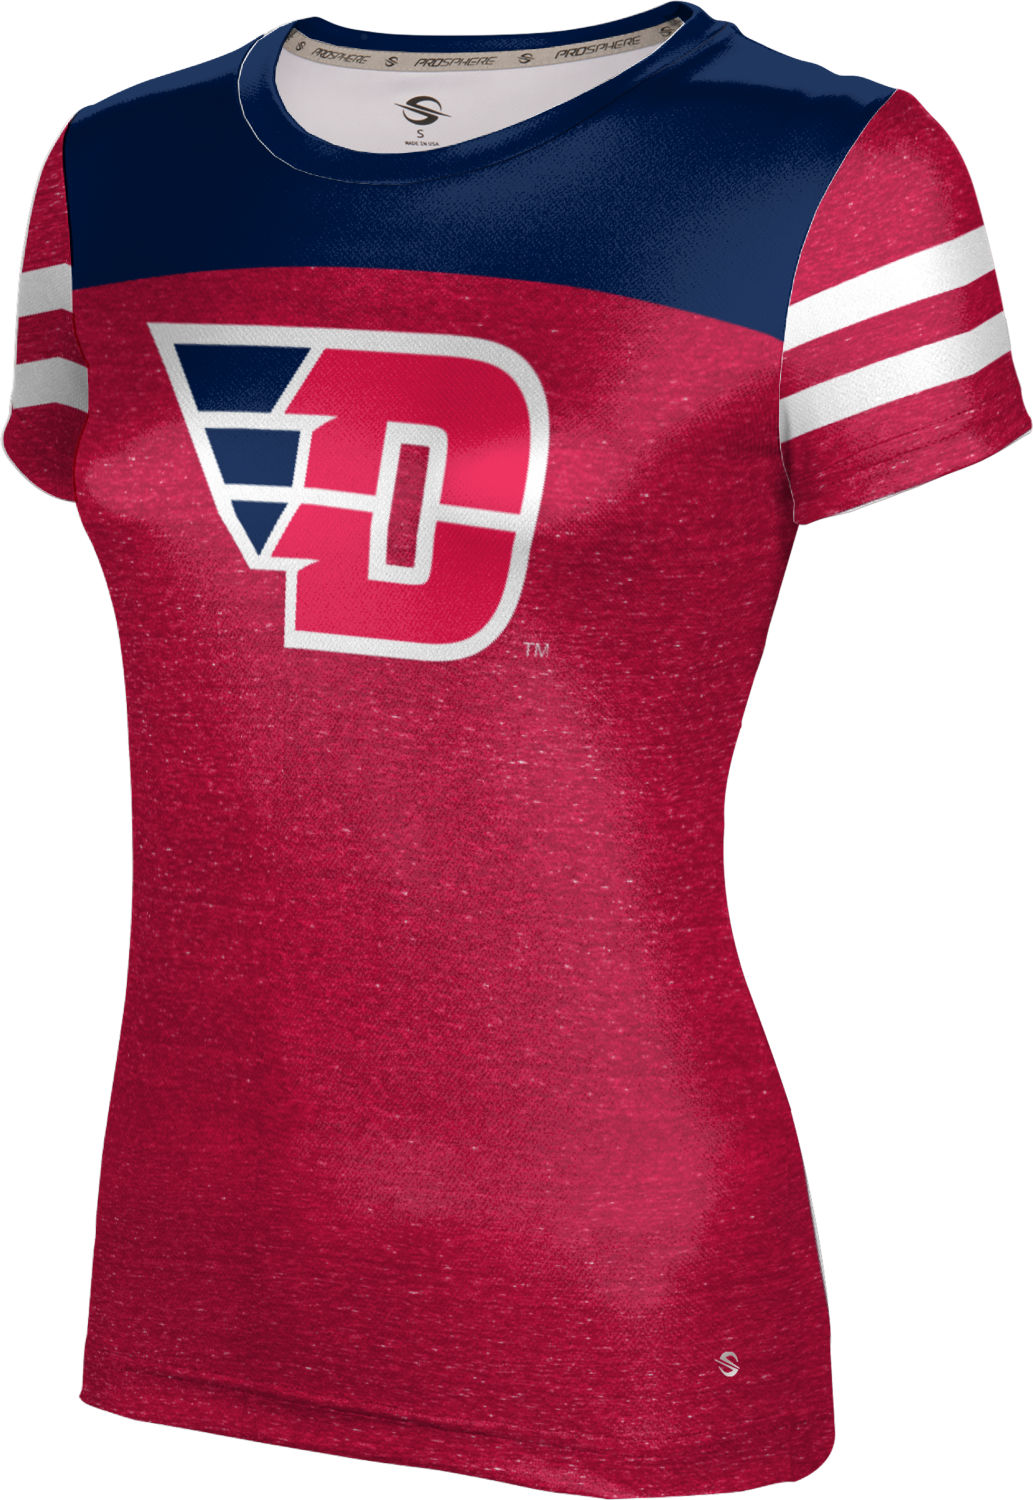 ProSphere Girls' University of Dayton Gameday Tech Tee